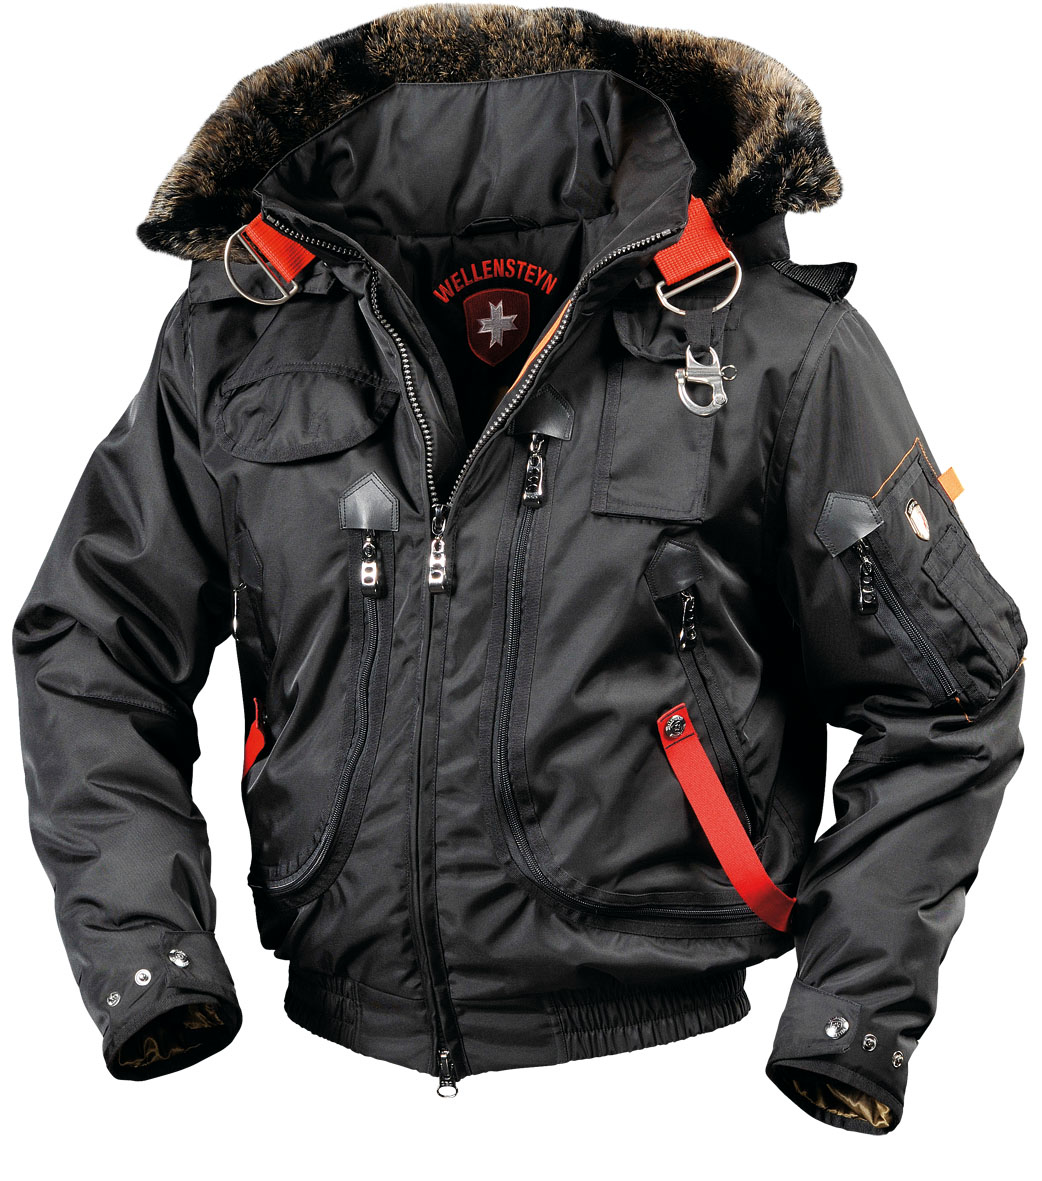 Wellensteyn Rescue Jacket. Functions : Windproof